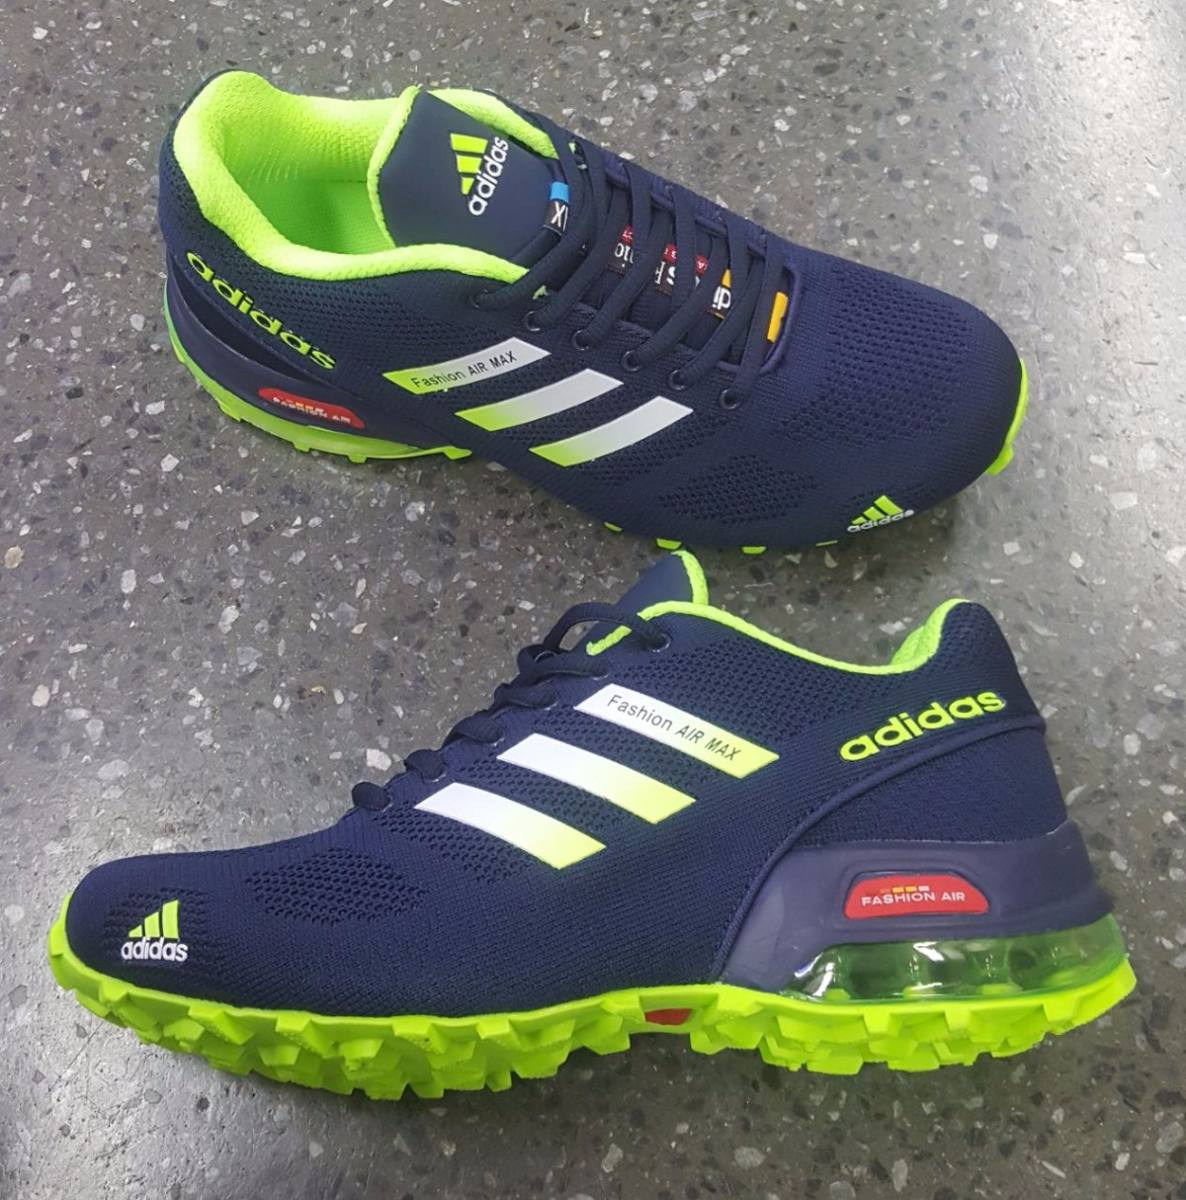 zapatillas adidas fashion air max